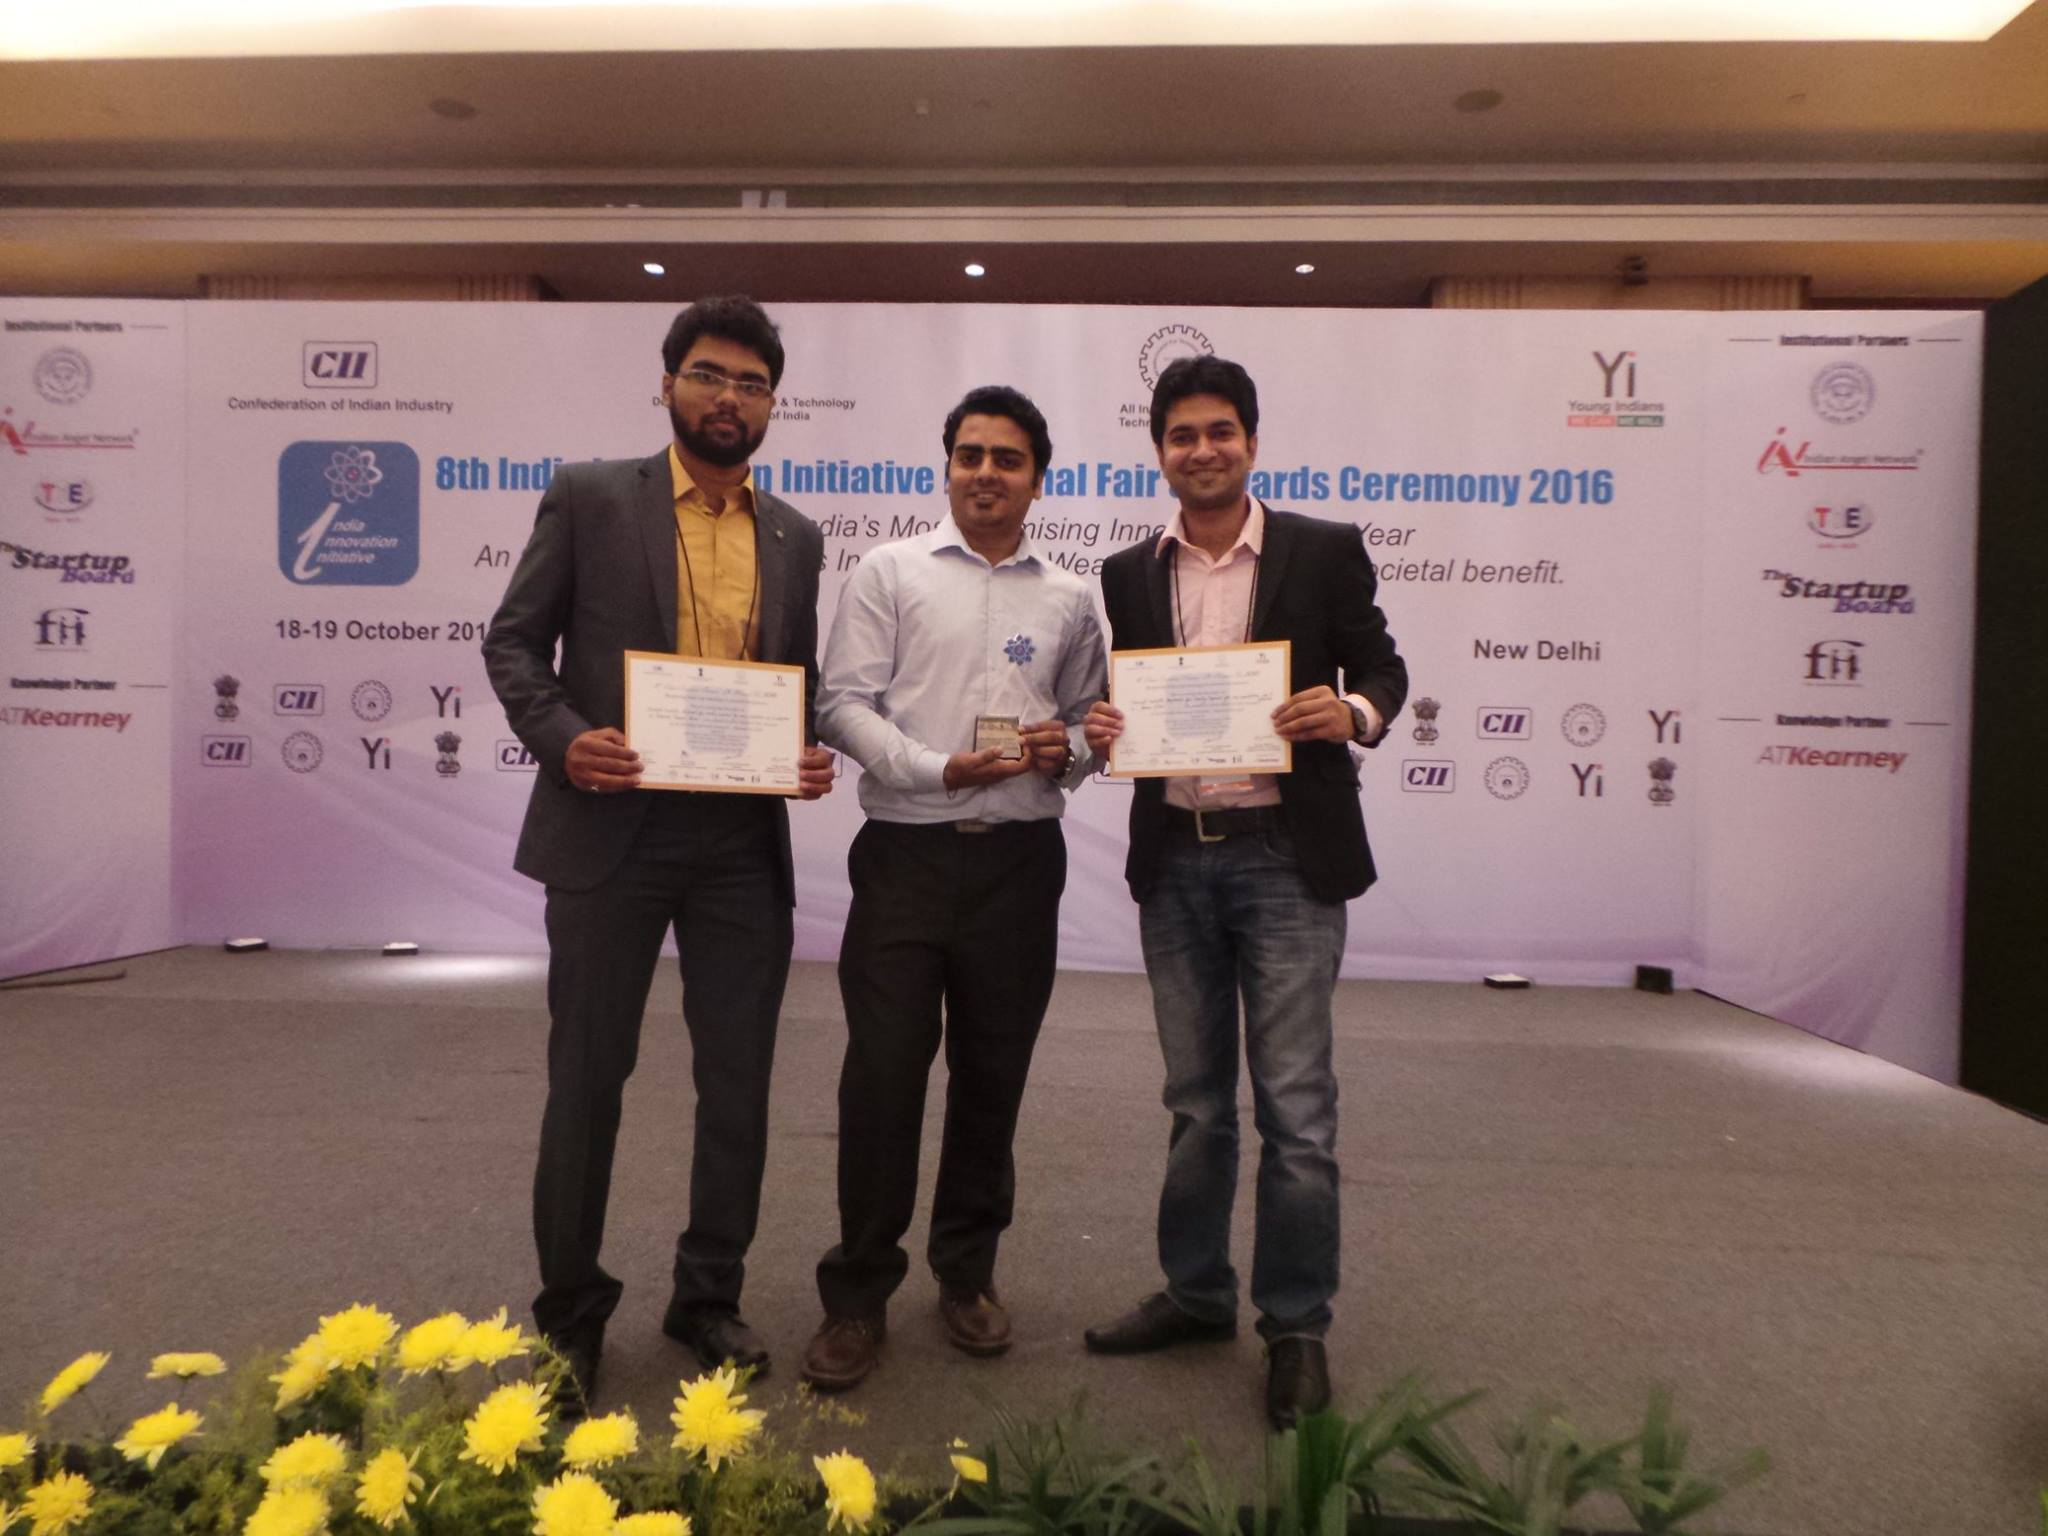 From left to Right Shaswat, Vaibhav and Gaurav posing on stage with Sliver Award for Best Innovators of 2016